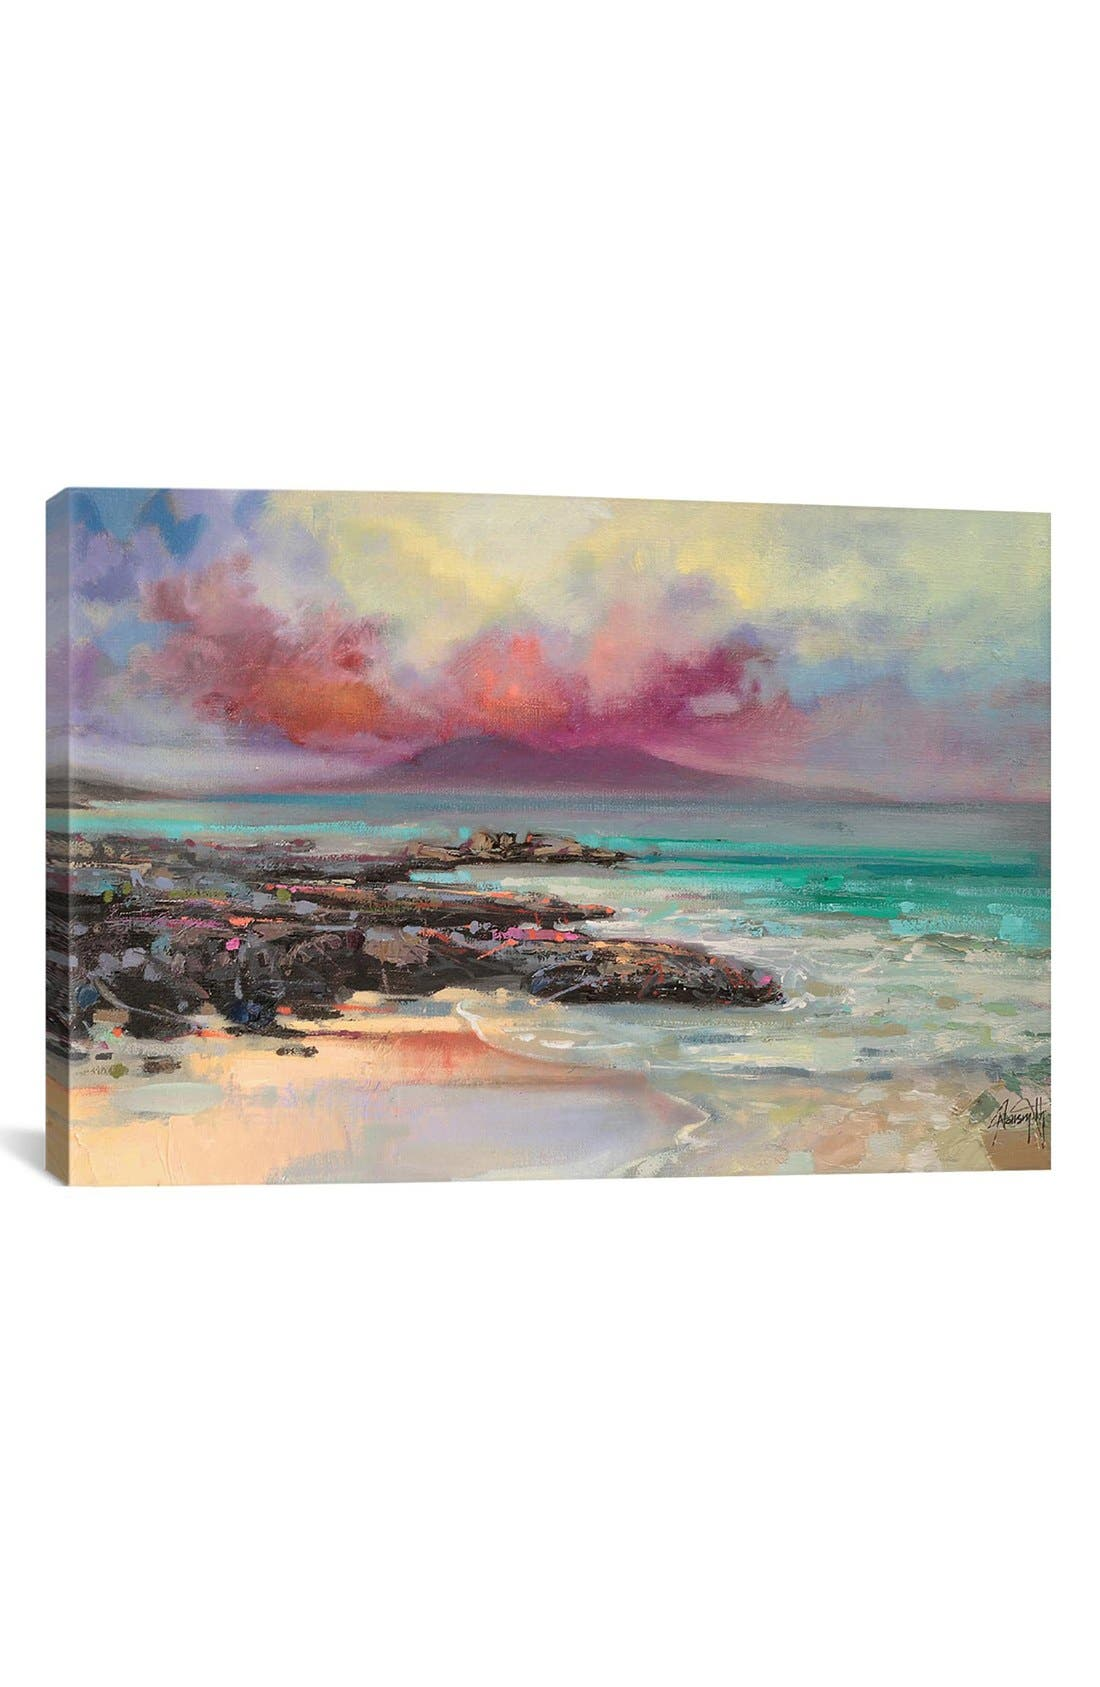 'Harris Rocks' Giclée Print Canvas Art,                             Main thumbnail 1, color,                             Pink